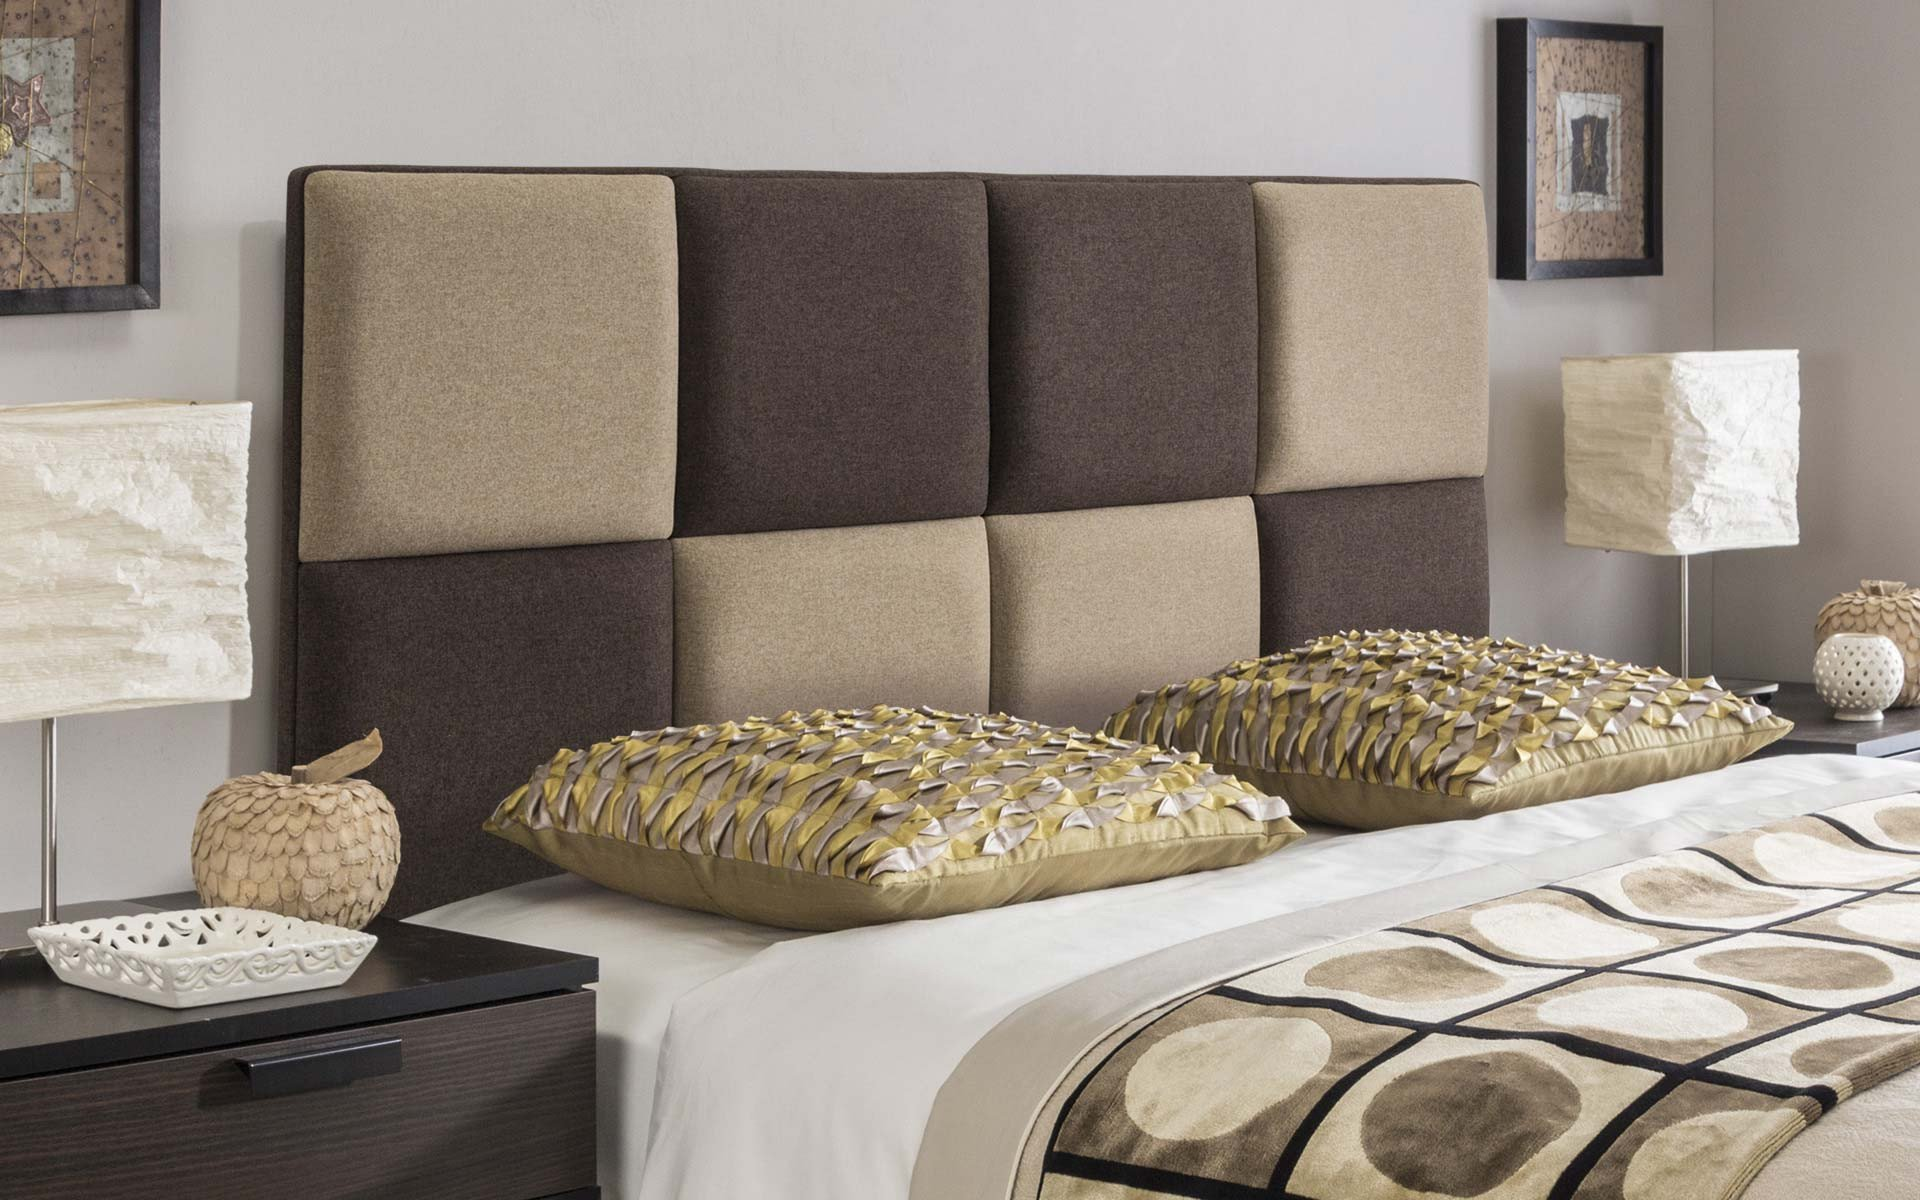 Turin-Upholstered-Mix-and-Match-Headboard